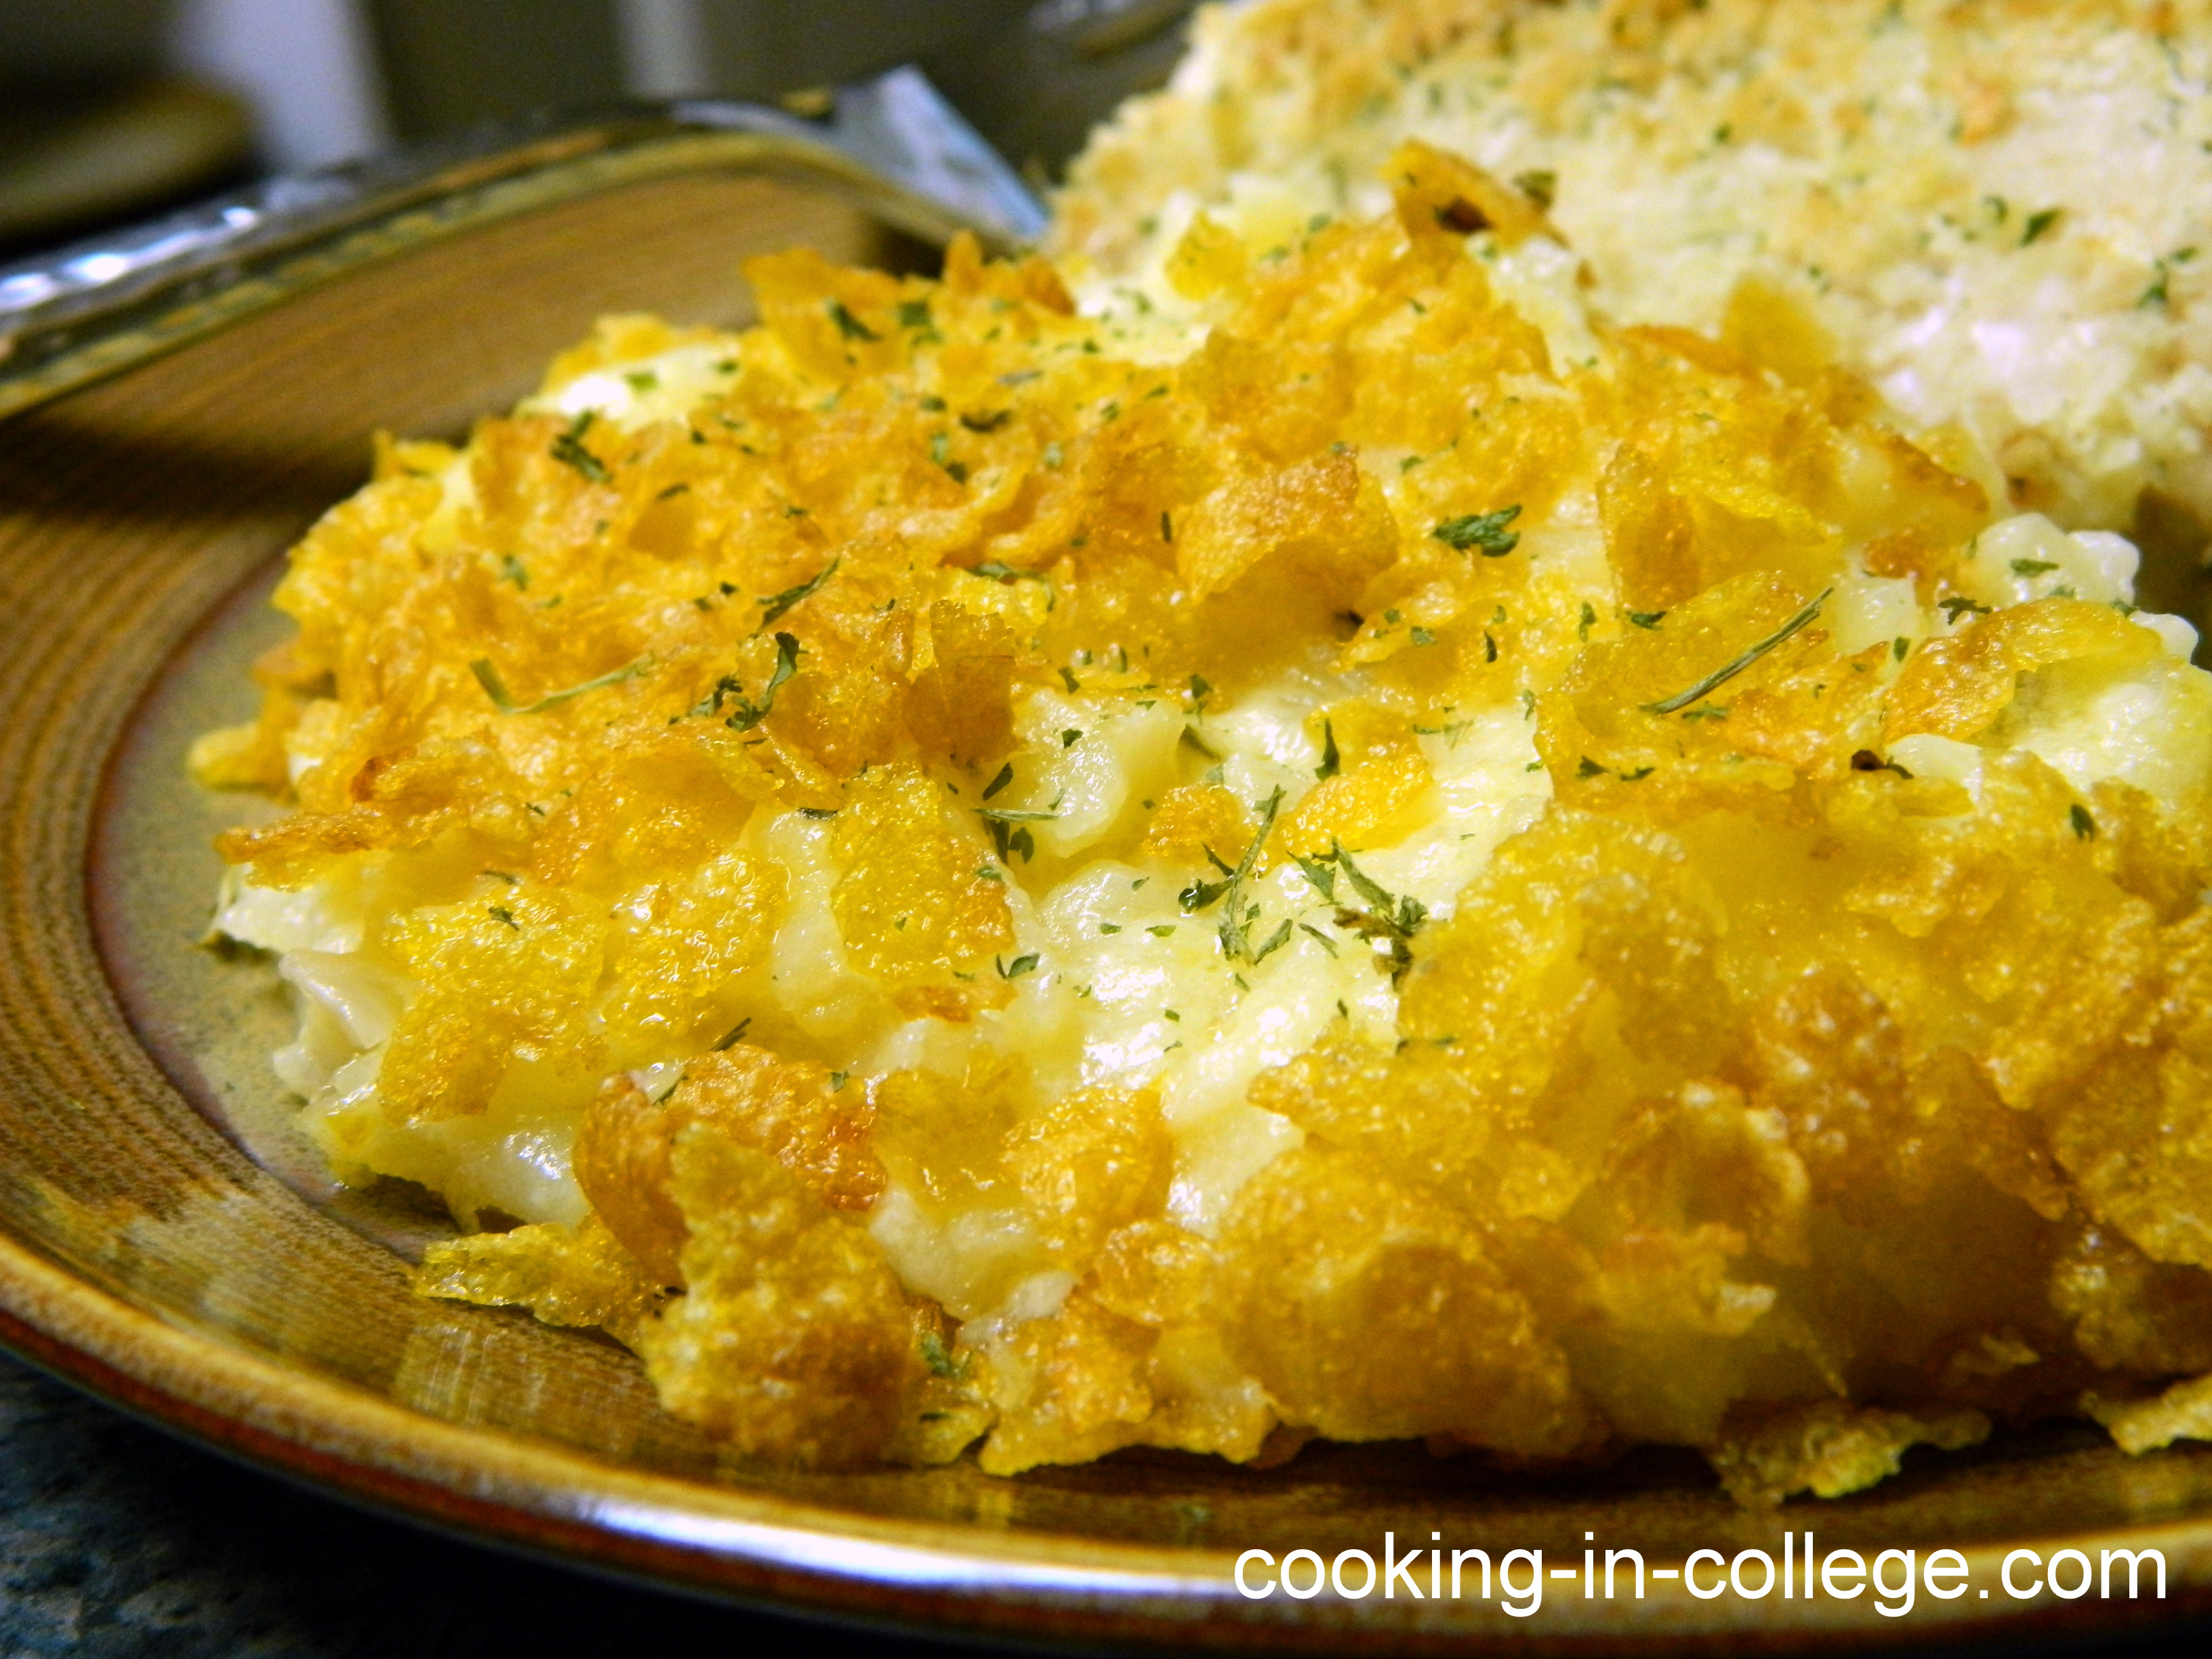 Cooking in College - Cheesy Potato Casserole